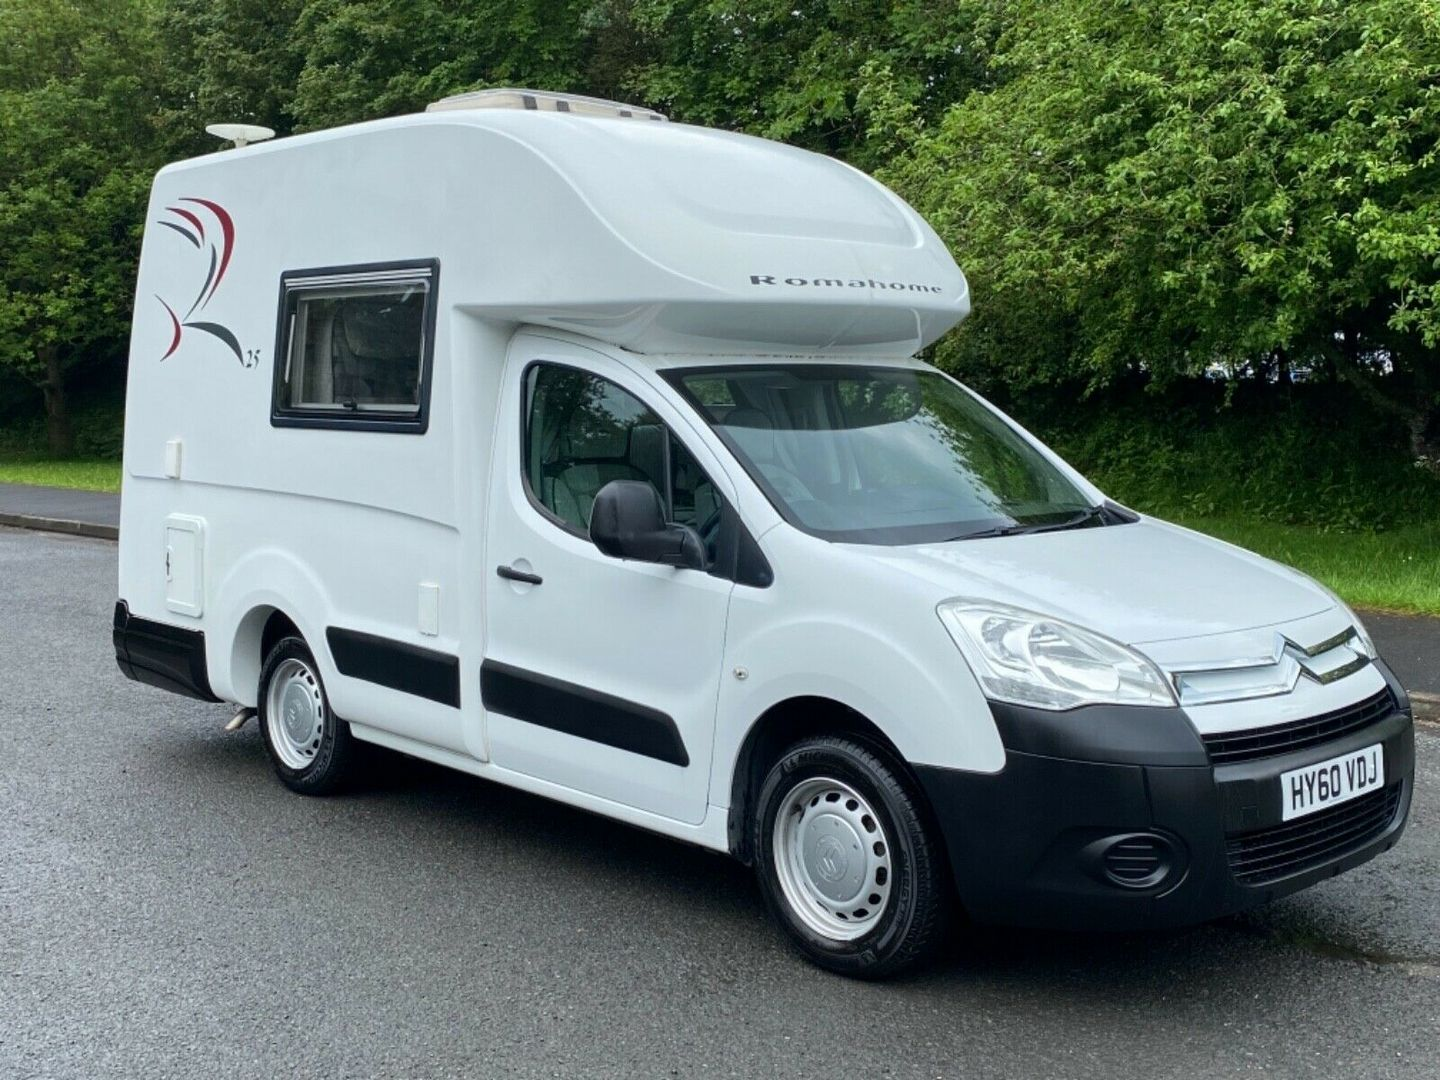 RomahomeROMAHOME 25Campervan for sale